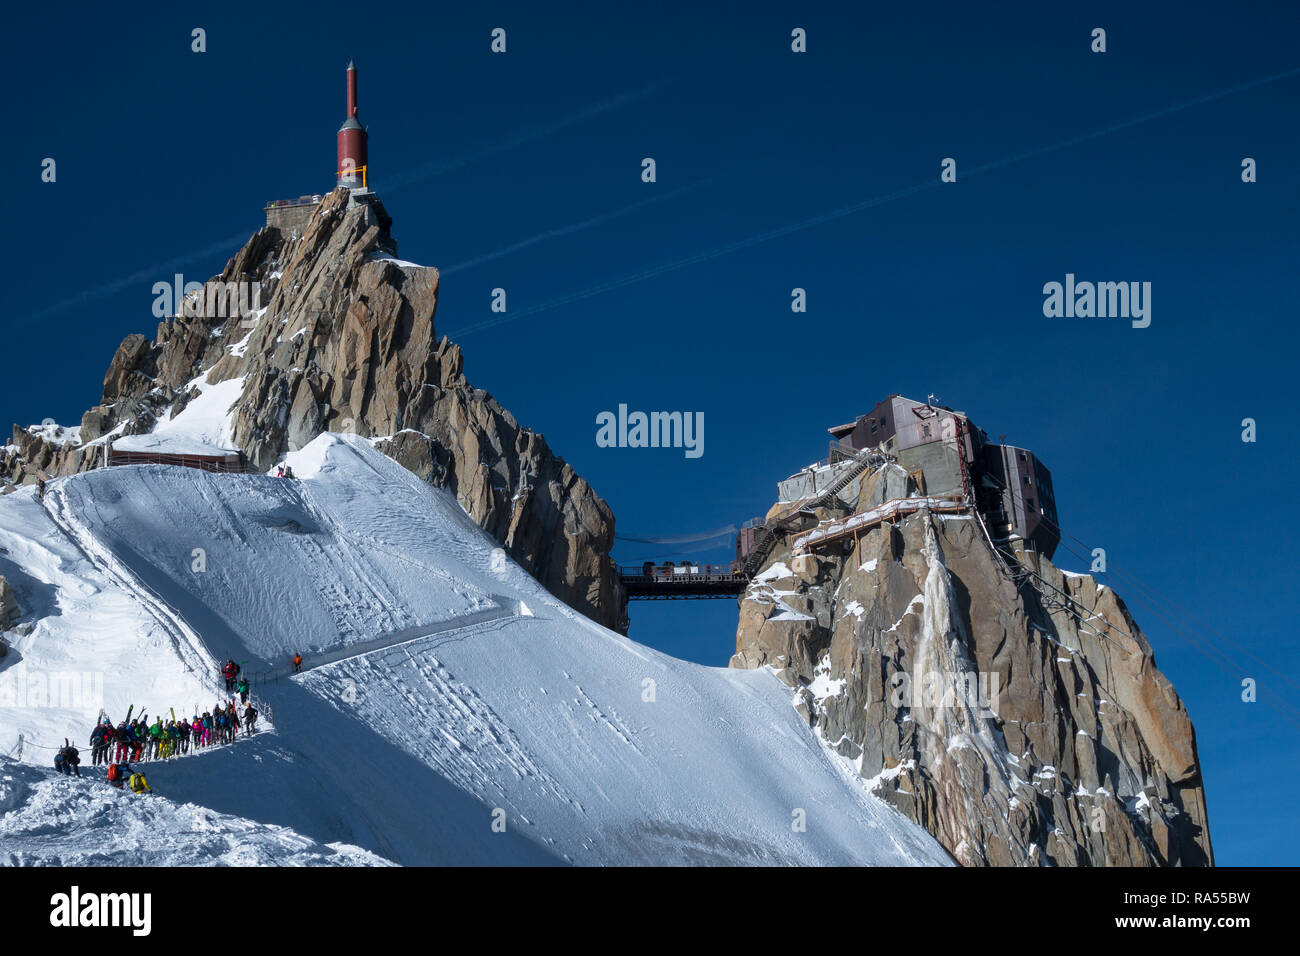 Chamonix, France - 30 Mars 2017: Line of offpiste skiers and ski tourers waiting to make their way down famous ridge (arete) on Aiguille du Midi to sk - Stock Image